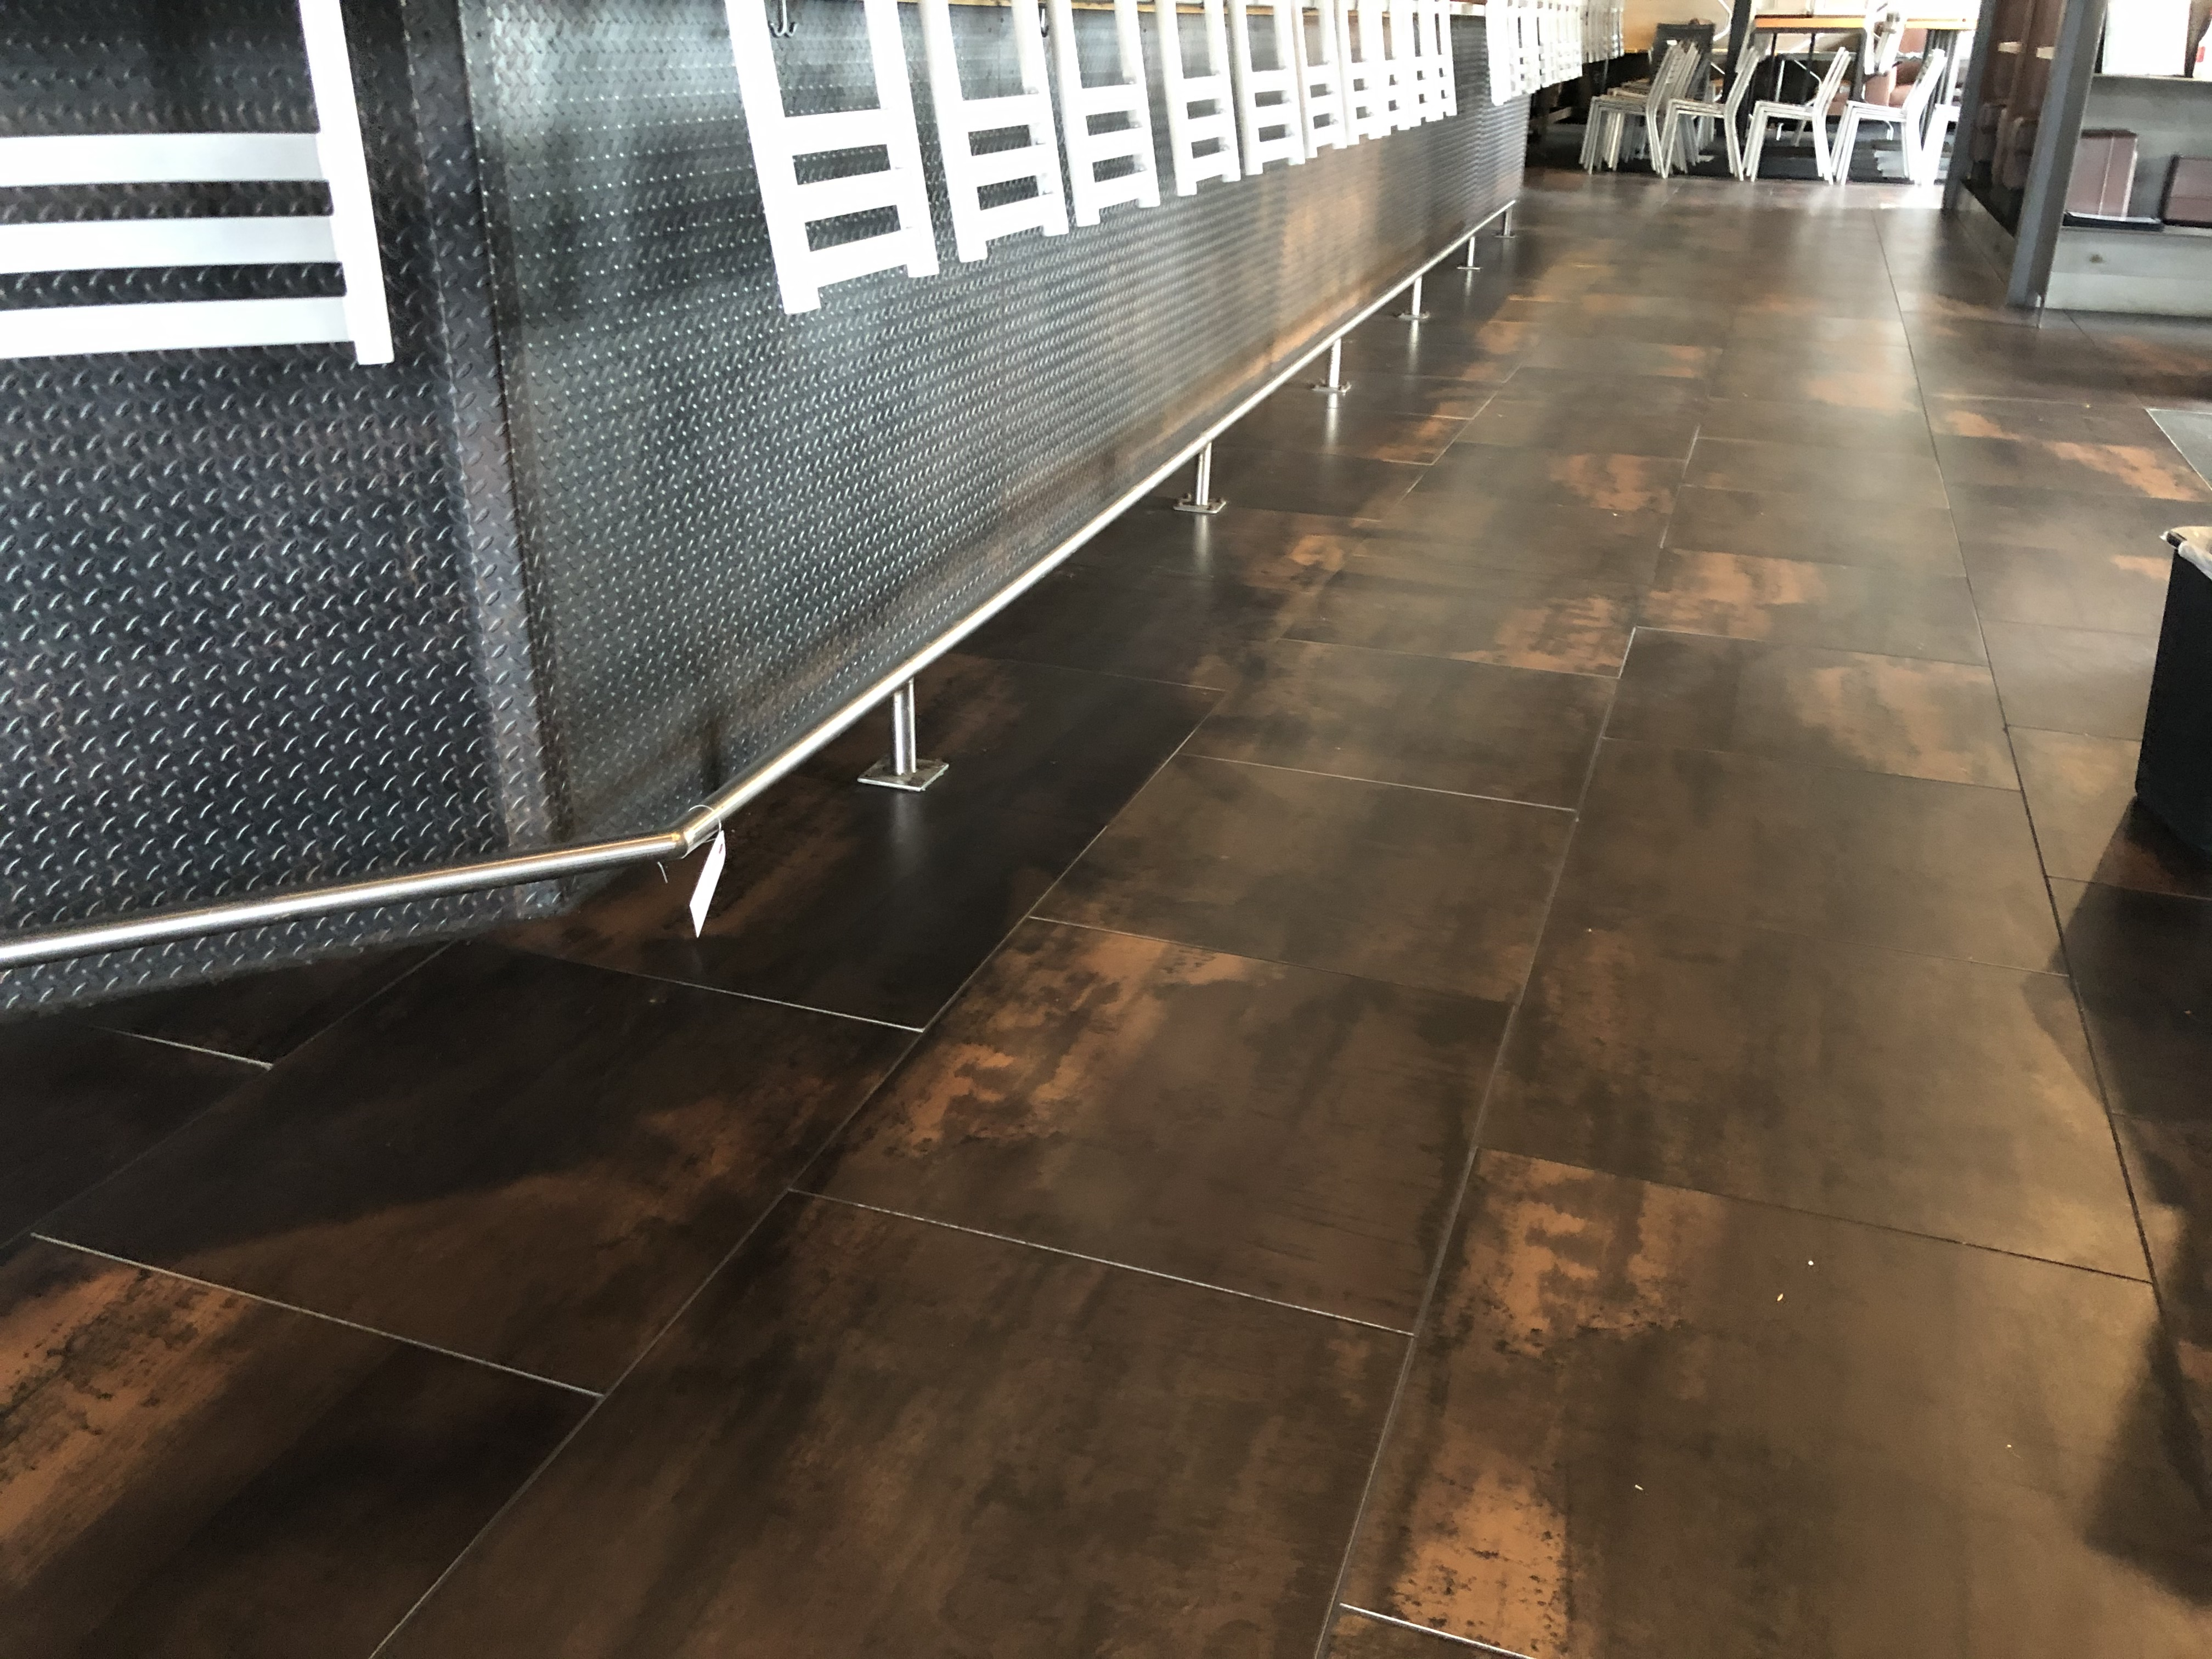 56' Total of Stainless Steel Footrail On The Base of the Bar (To Be Removed By Purchaser As are - Image 2 of 3